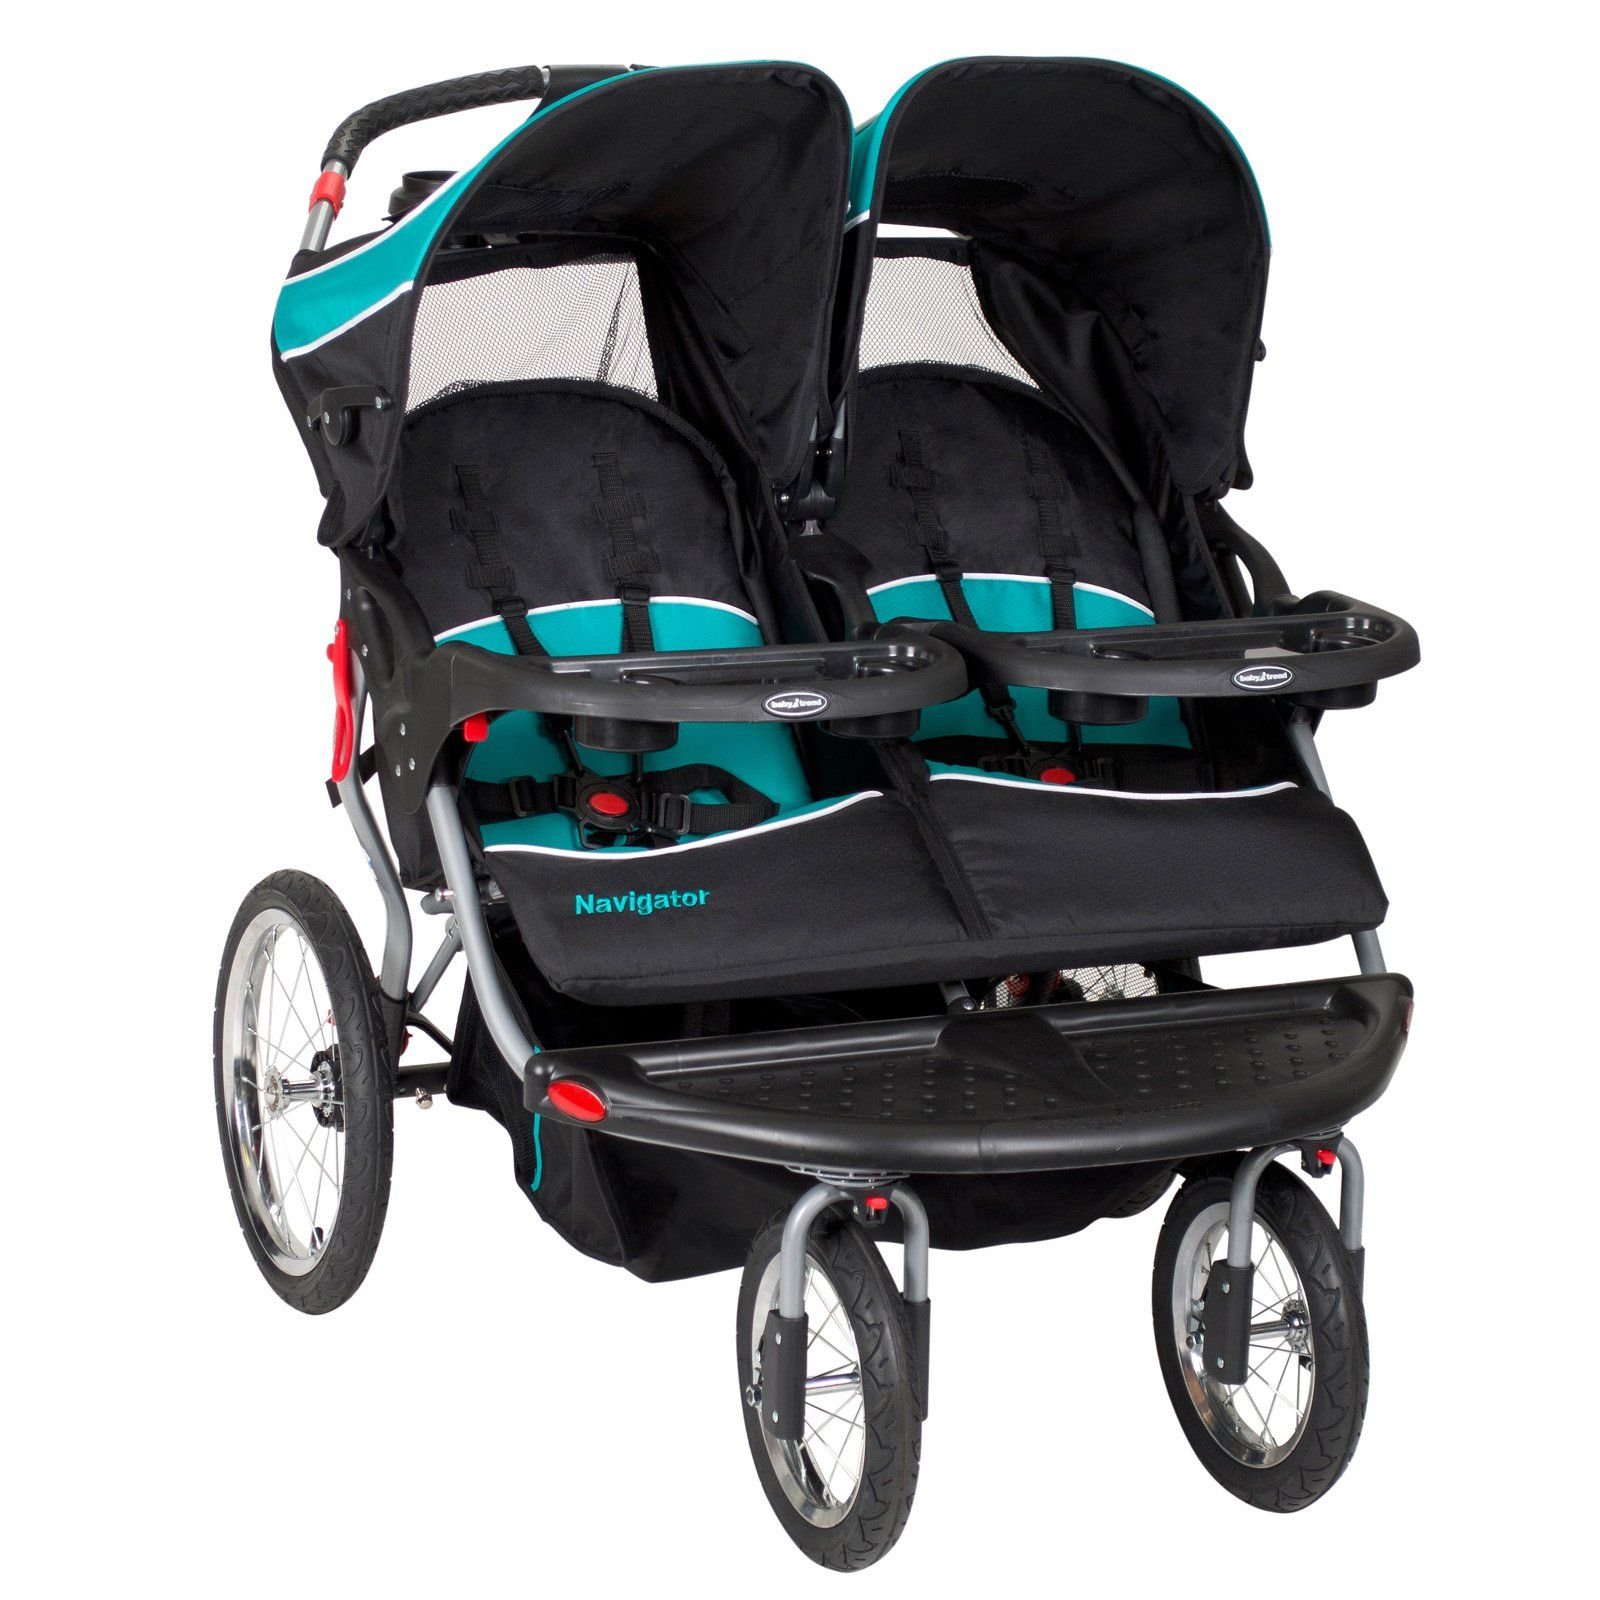 This huge baby stroller is perfect for any grown up babies Credit Contours B Videosgoviral Pinterest